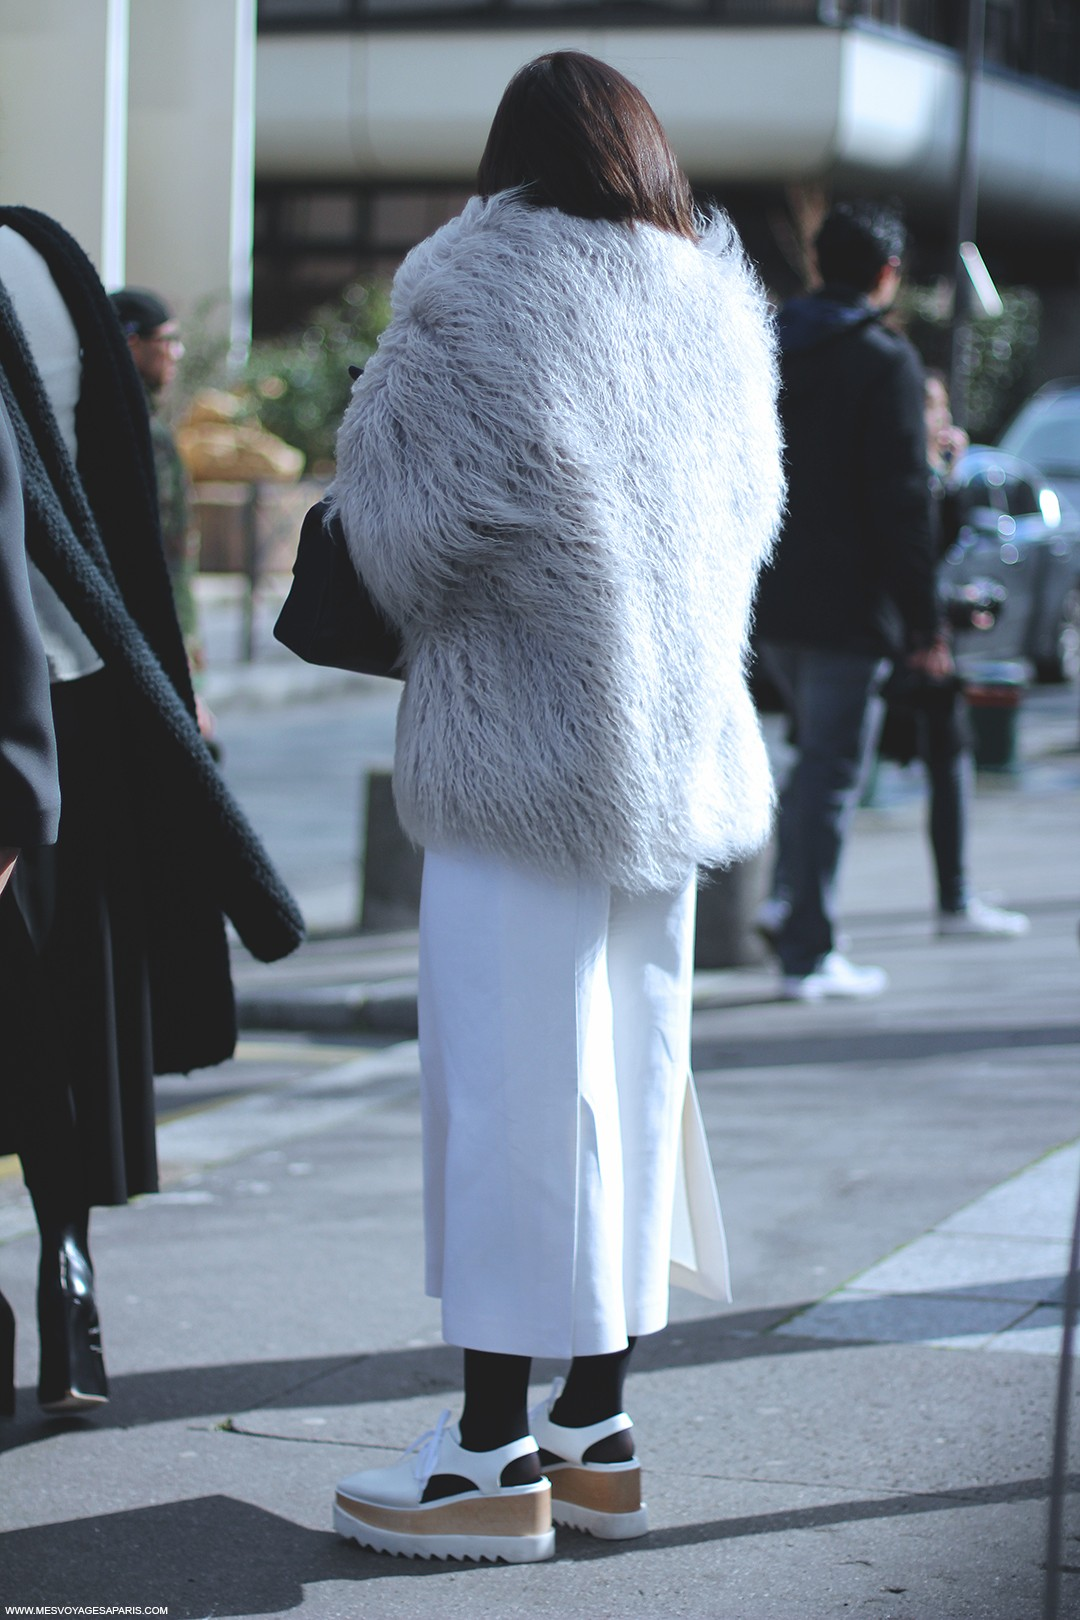 street-style-outfits-fashion-week